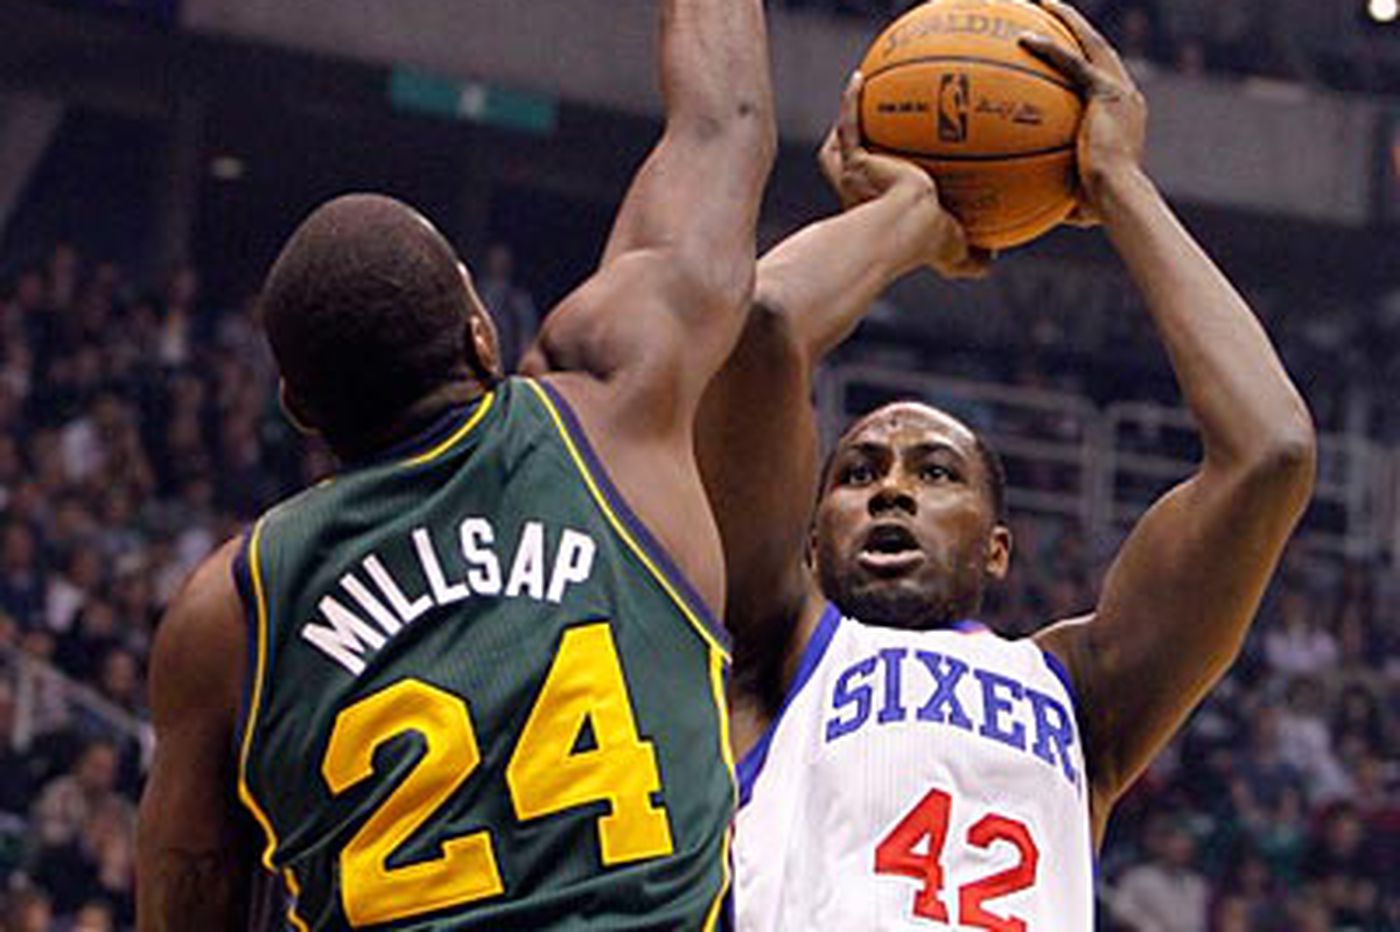 Sixers falter against Jazz and lose, 102-99